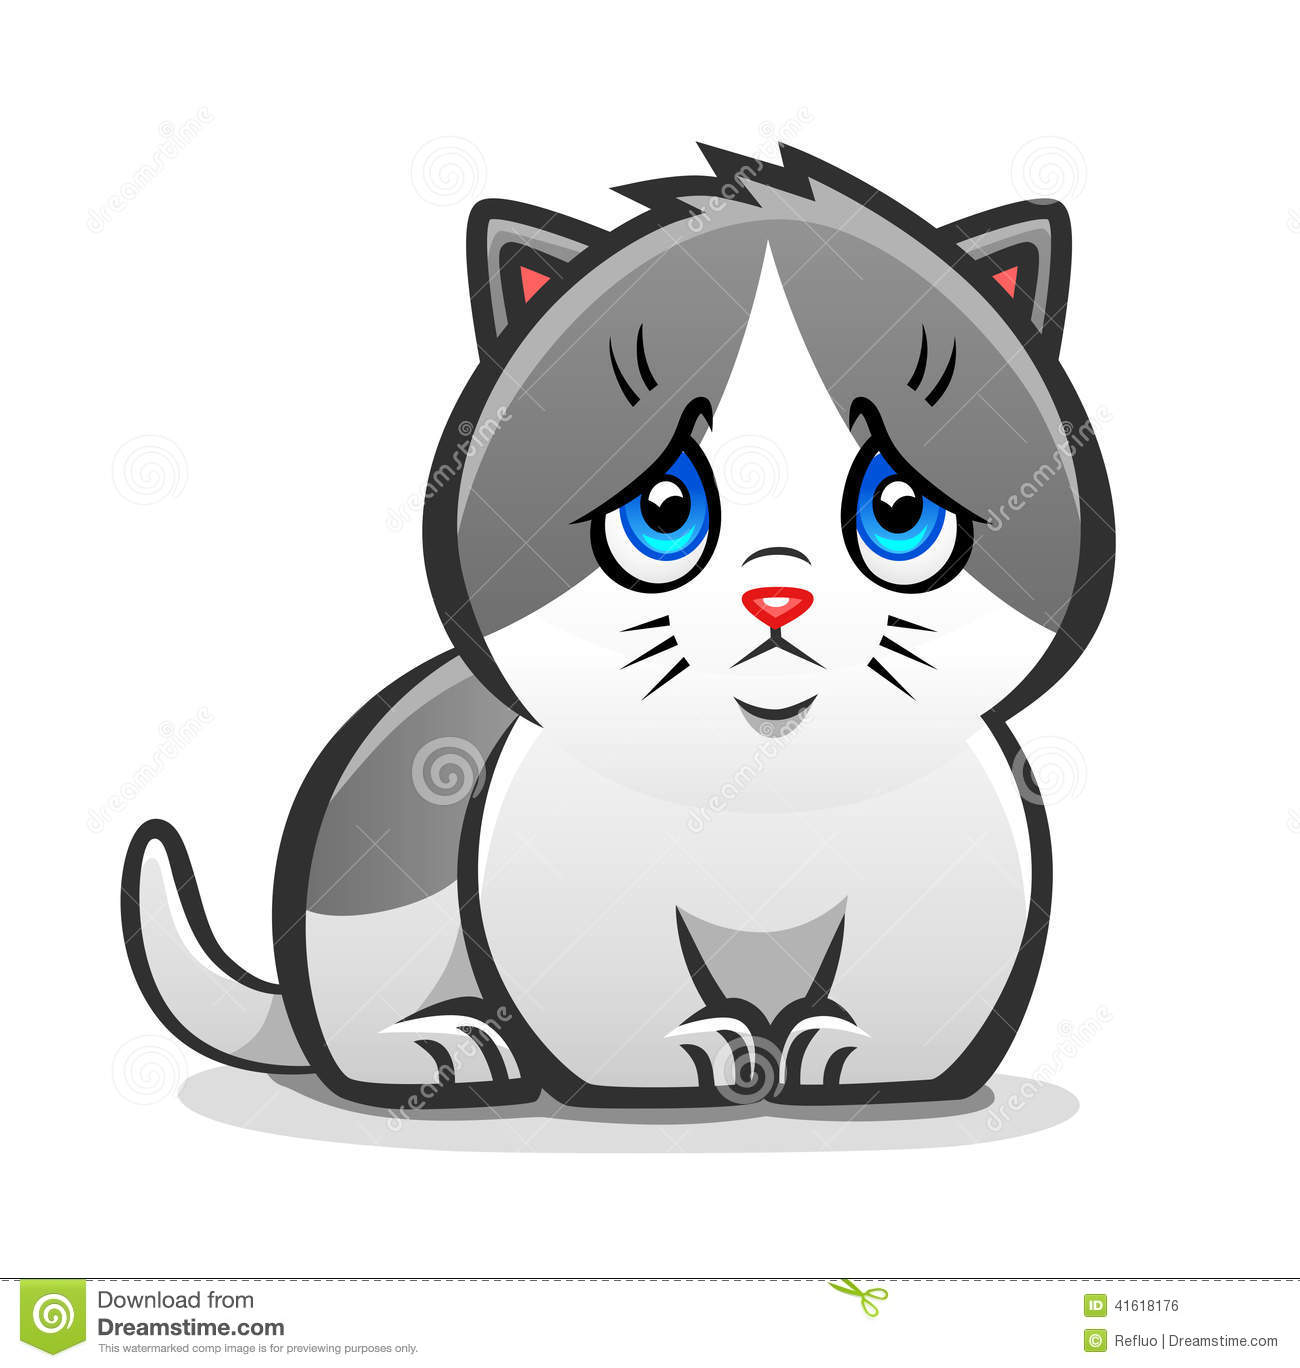 Sad Kitten Stock Vector - Image: 41618176